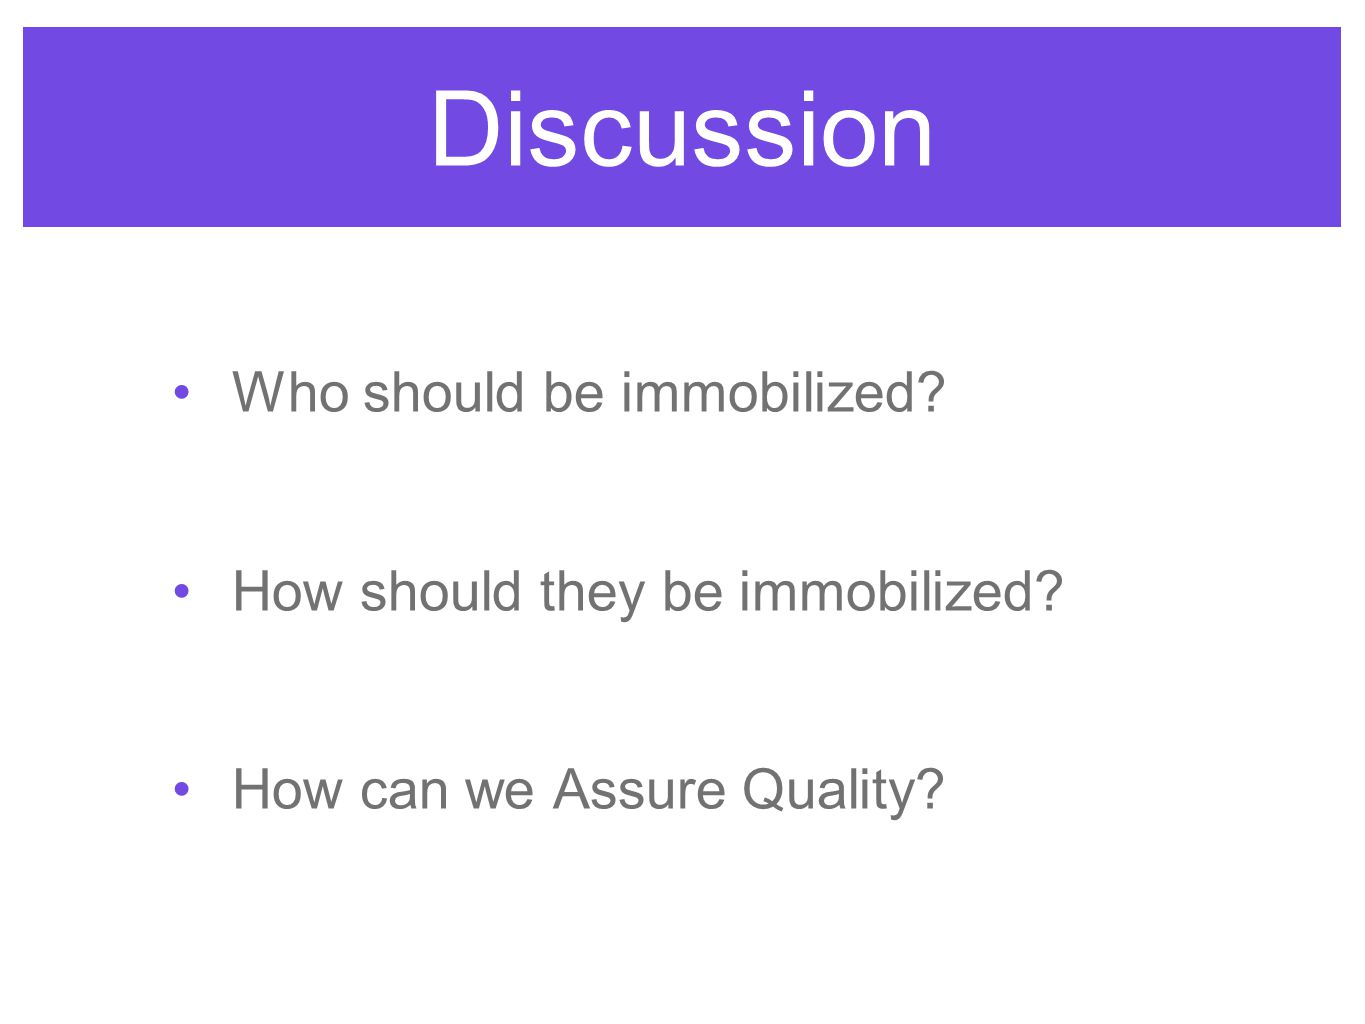 Who should be immobilized? How should they be immobilized? How can we Assure Quality?